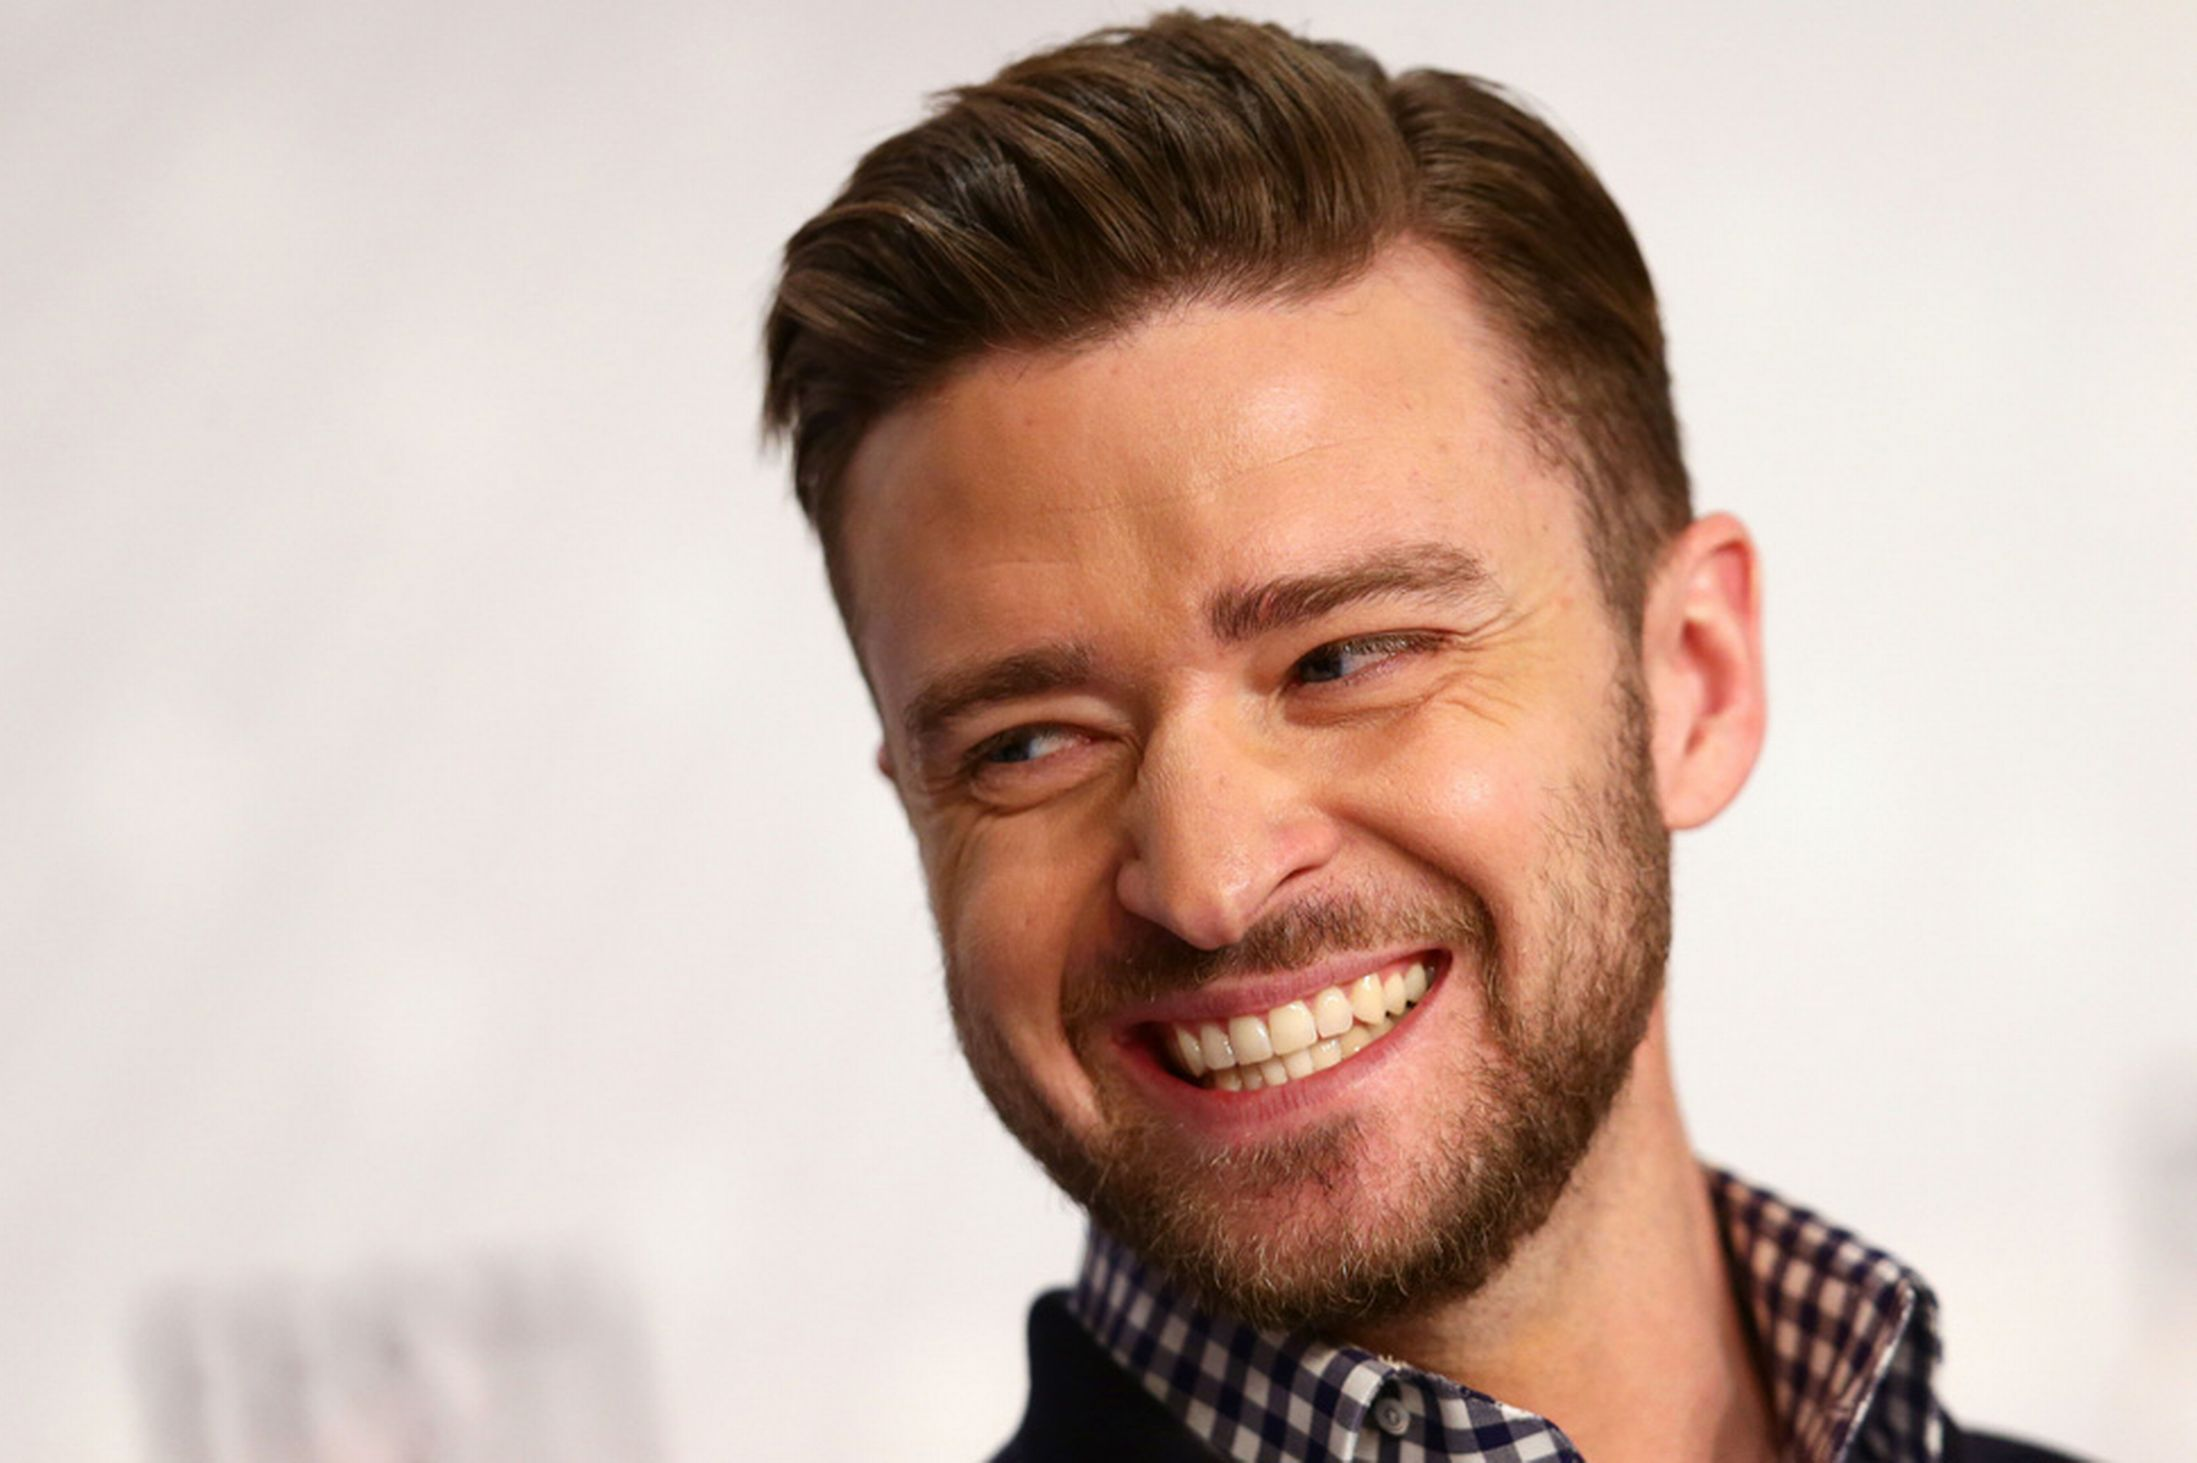 Photo of Justin Timberlake mentions Gilbert, AZ in tweet